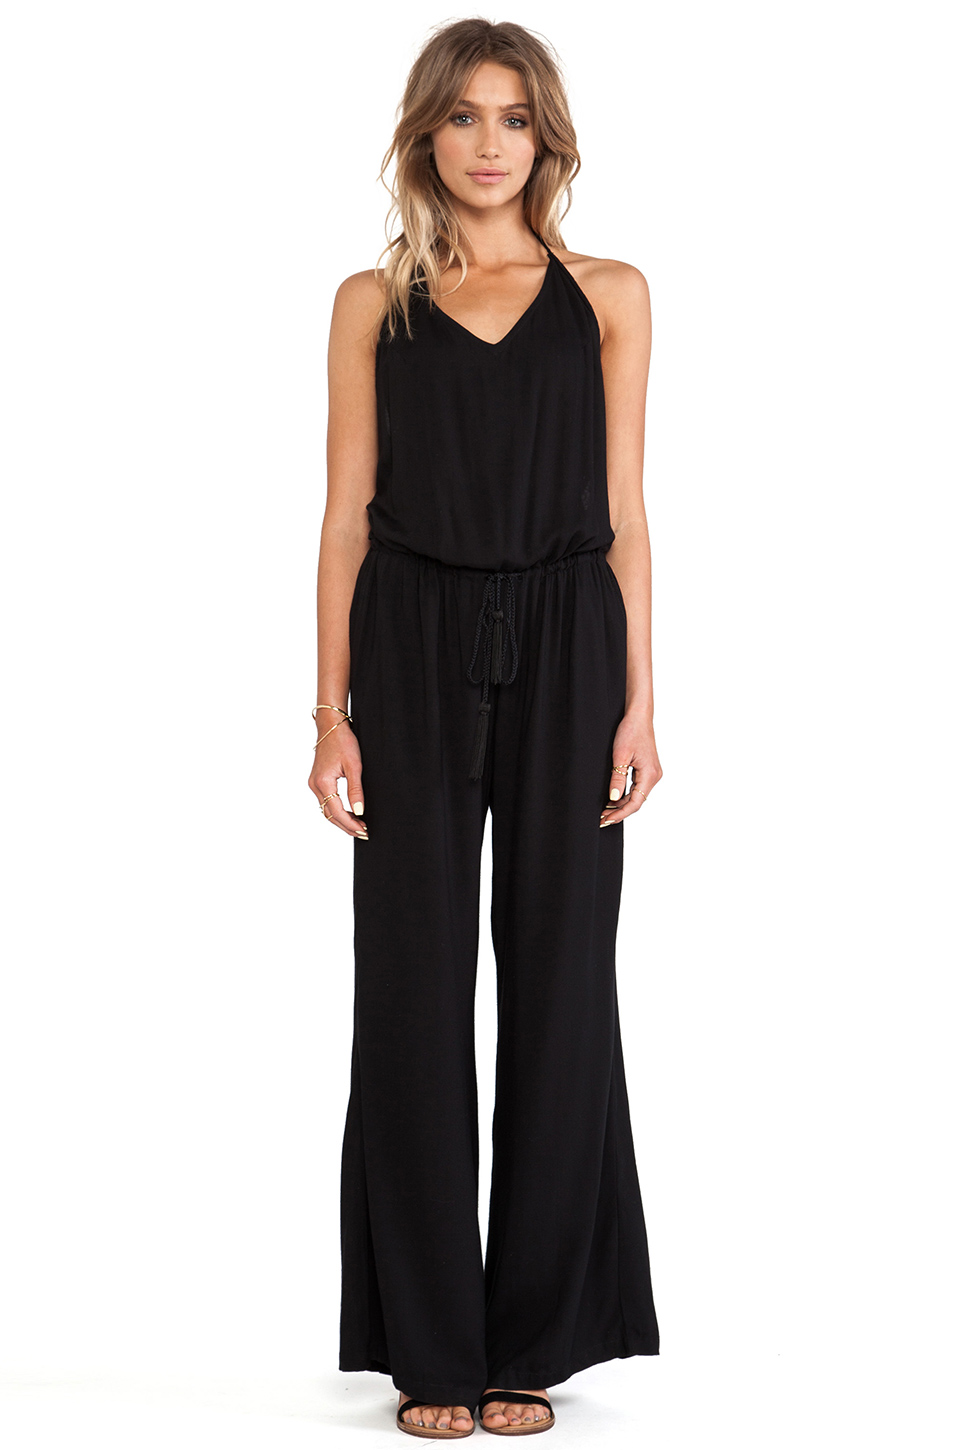 Cleobella Willow Jumpsuit in Black from REVOLVEclothing.com